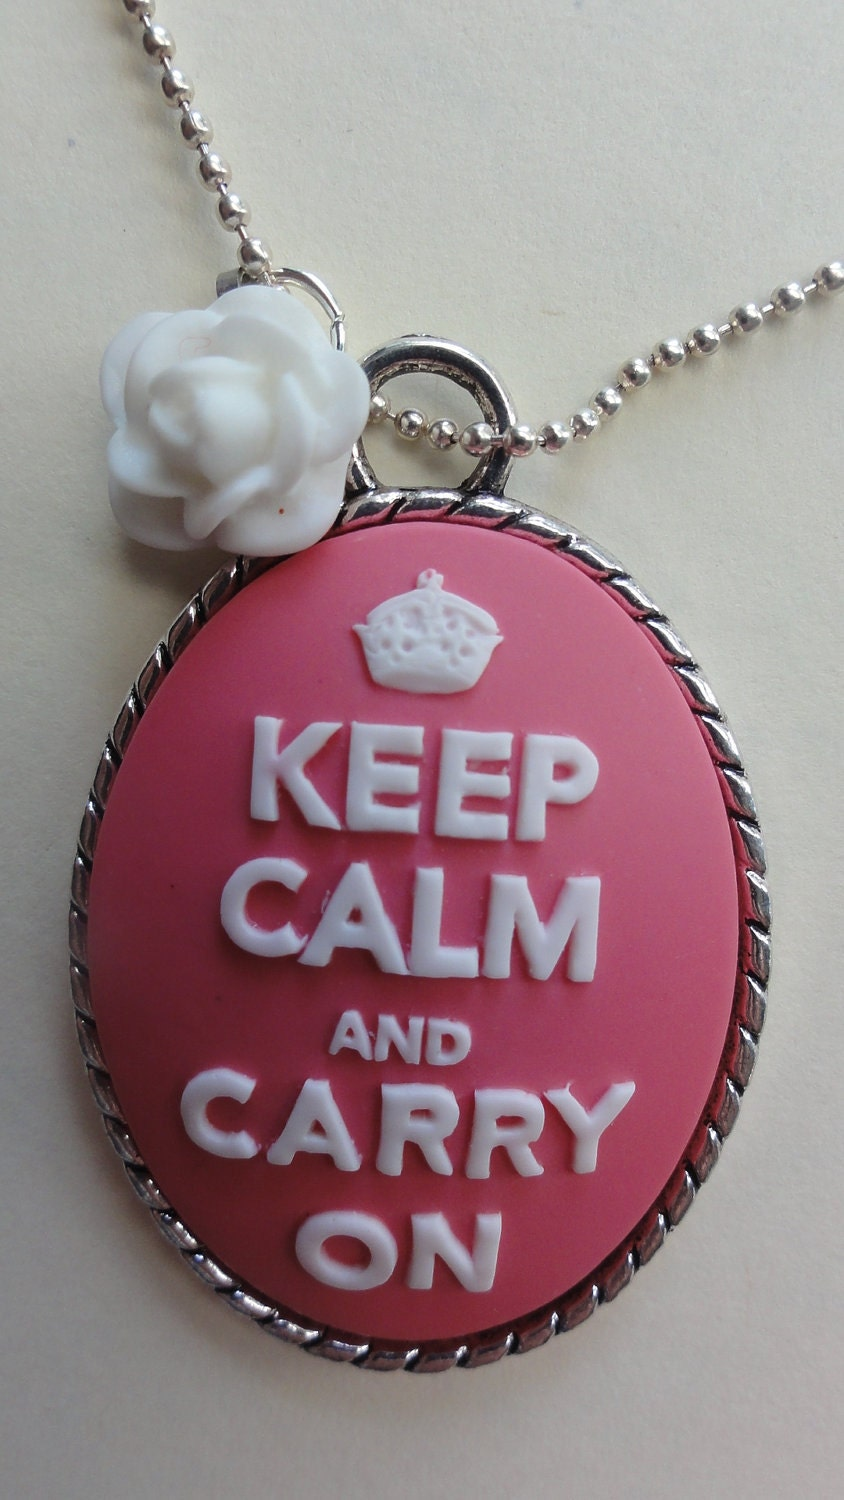 Keep calm and carry on necklace with white rose cabochon